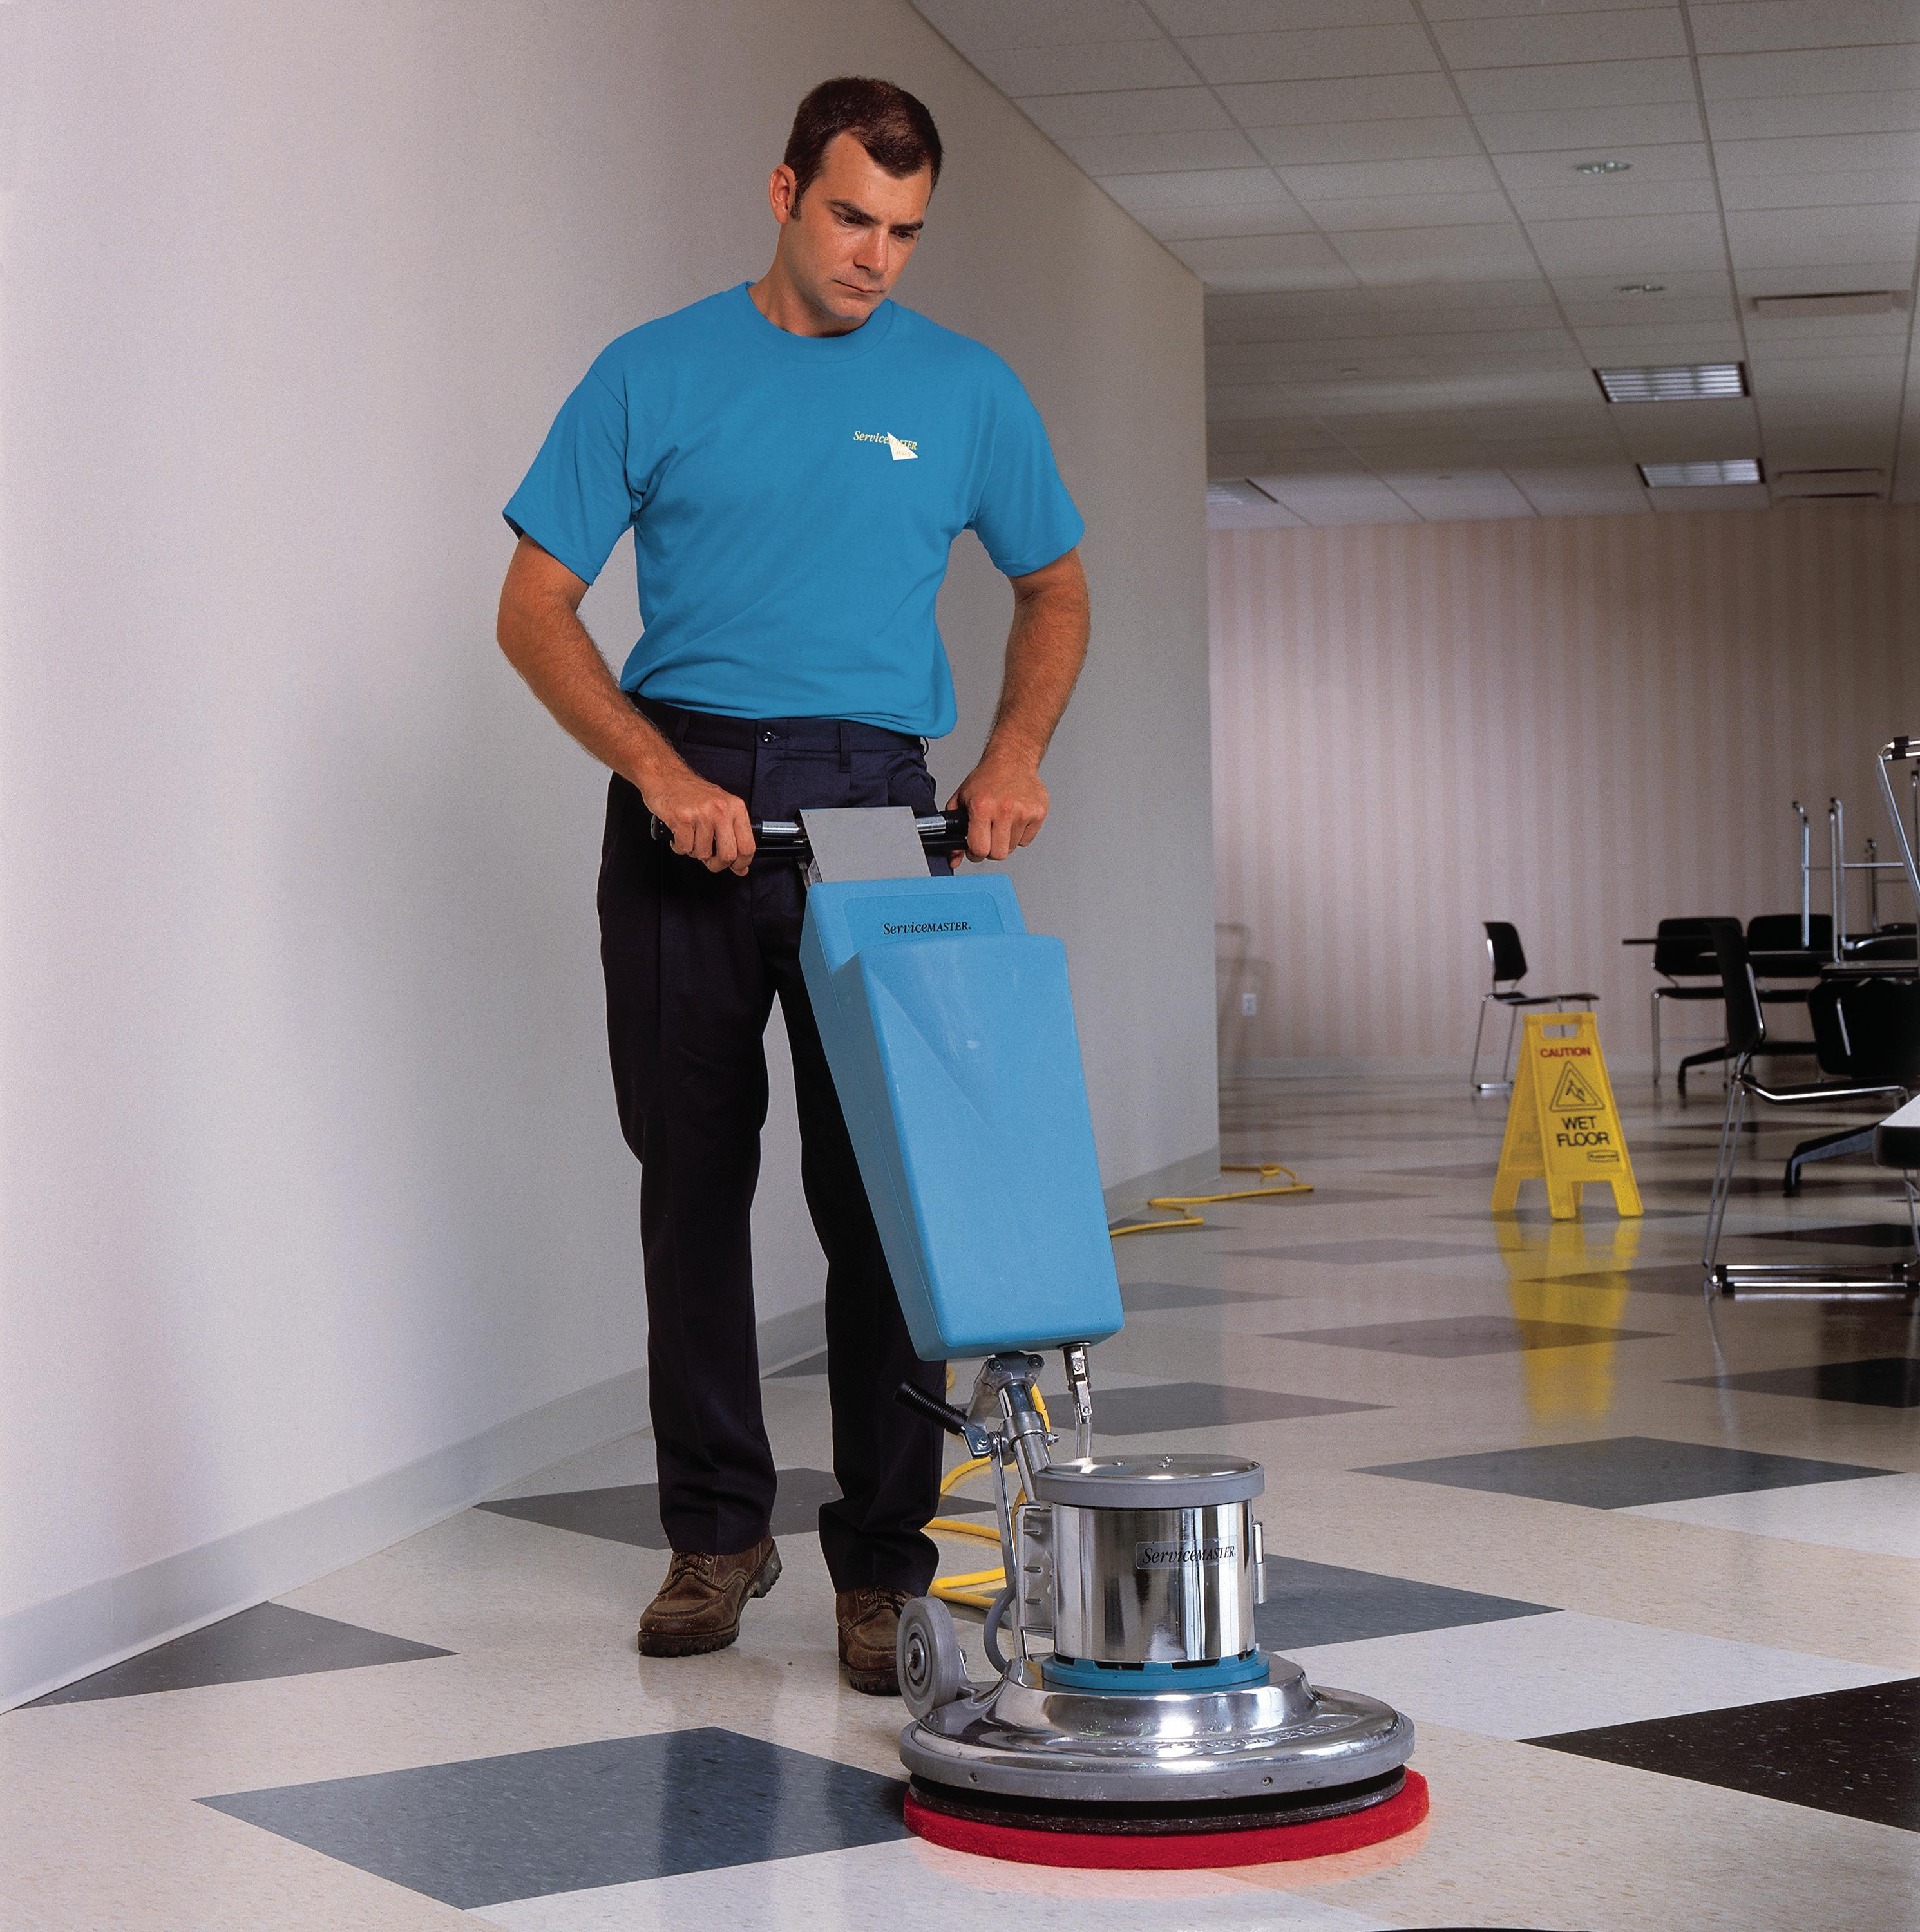 ServiceMaster Janitorial by Bustos image 6